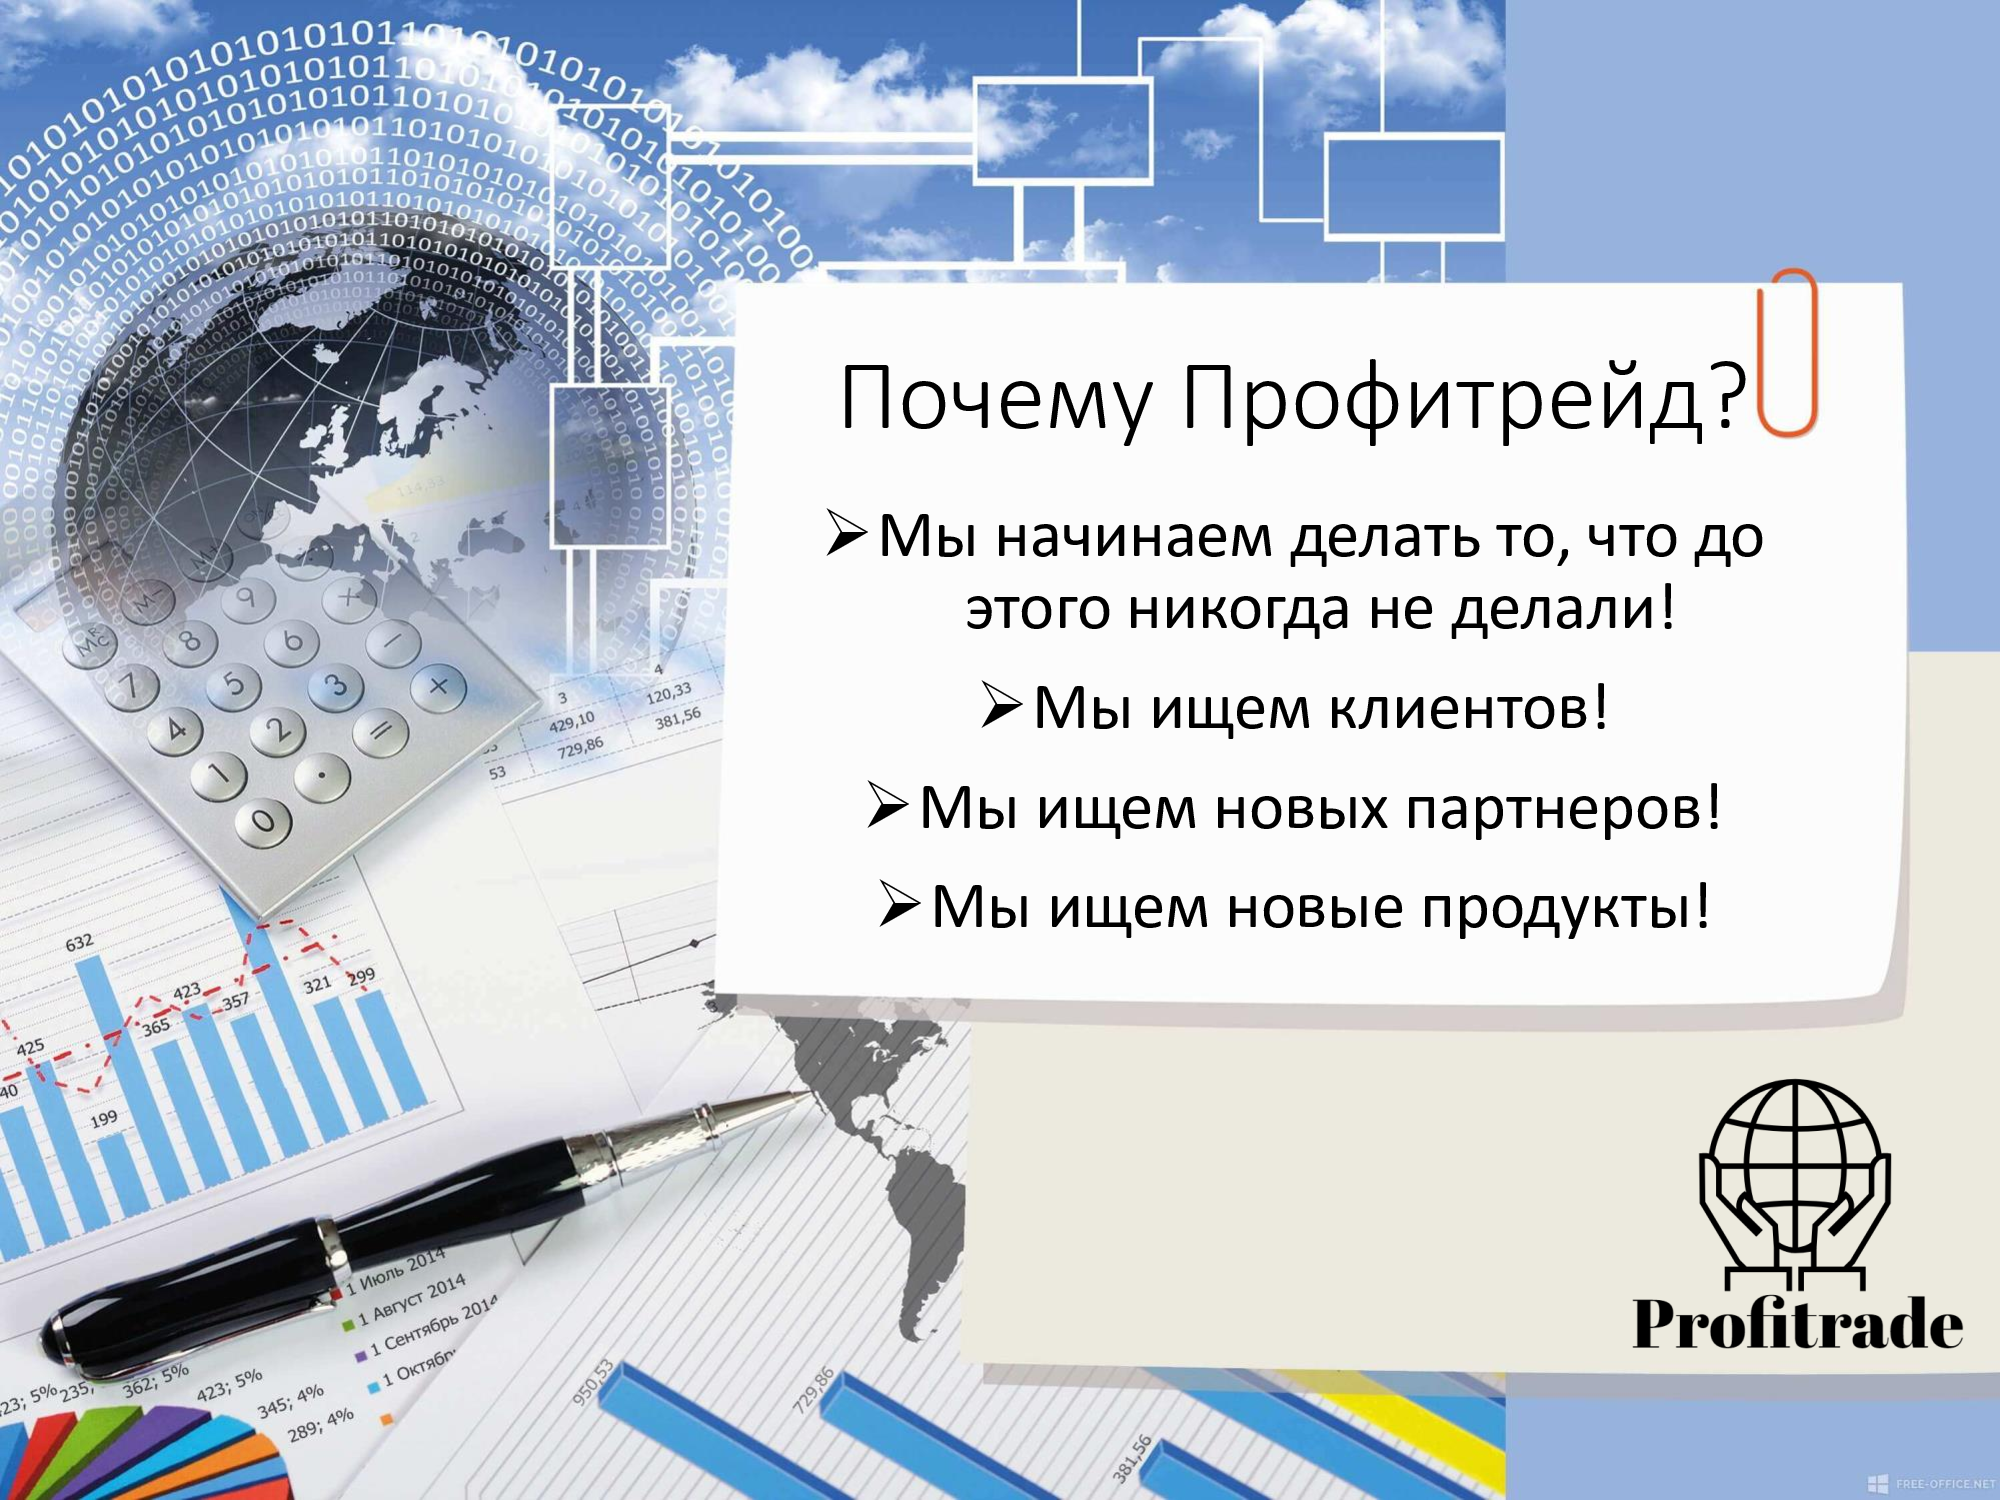 We are constantly looking for new partners and discover new countries.